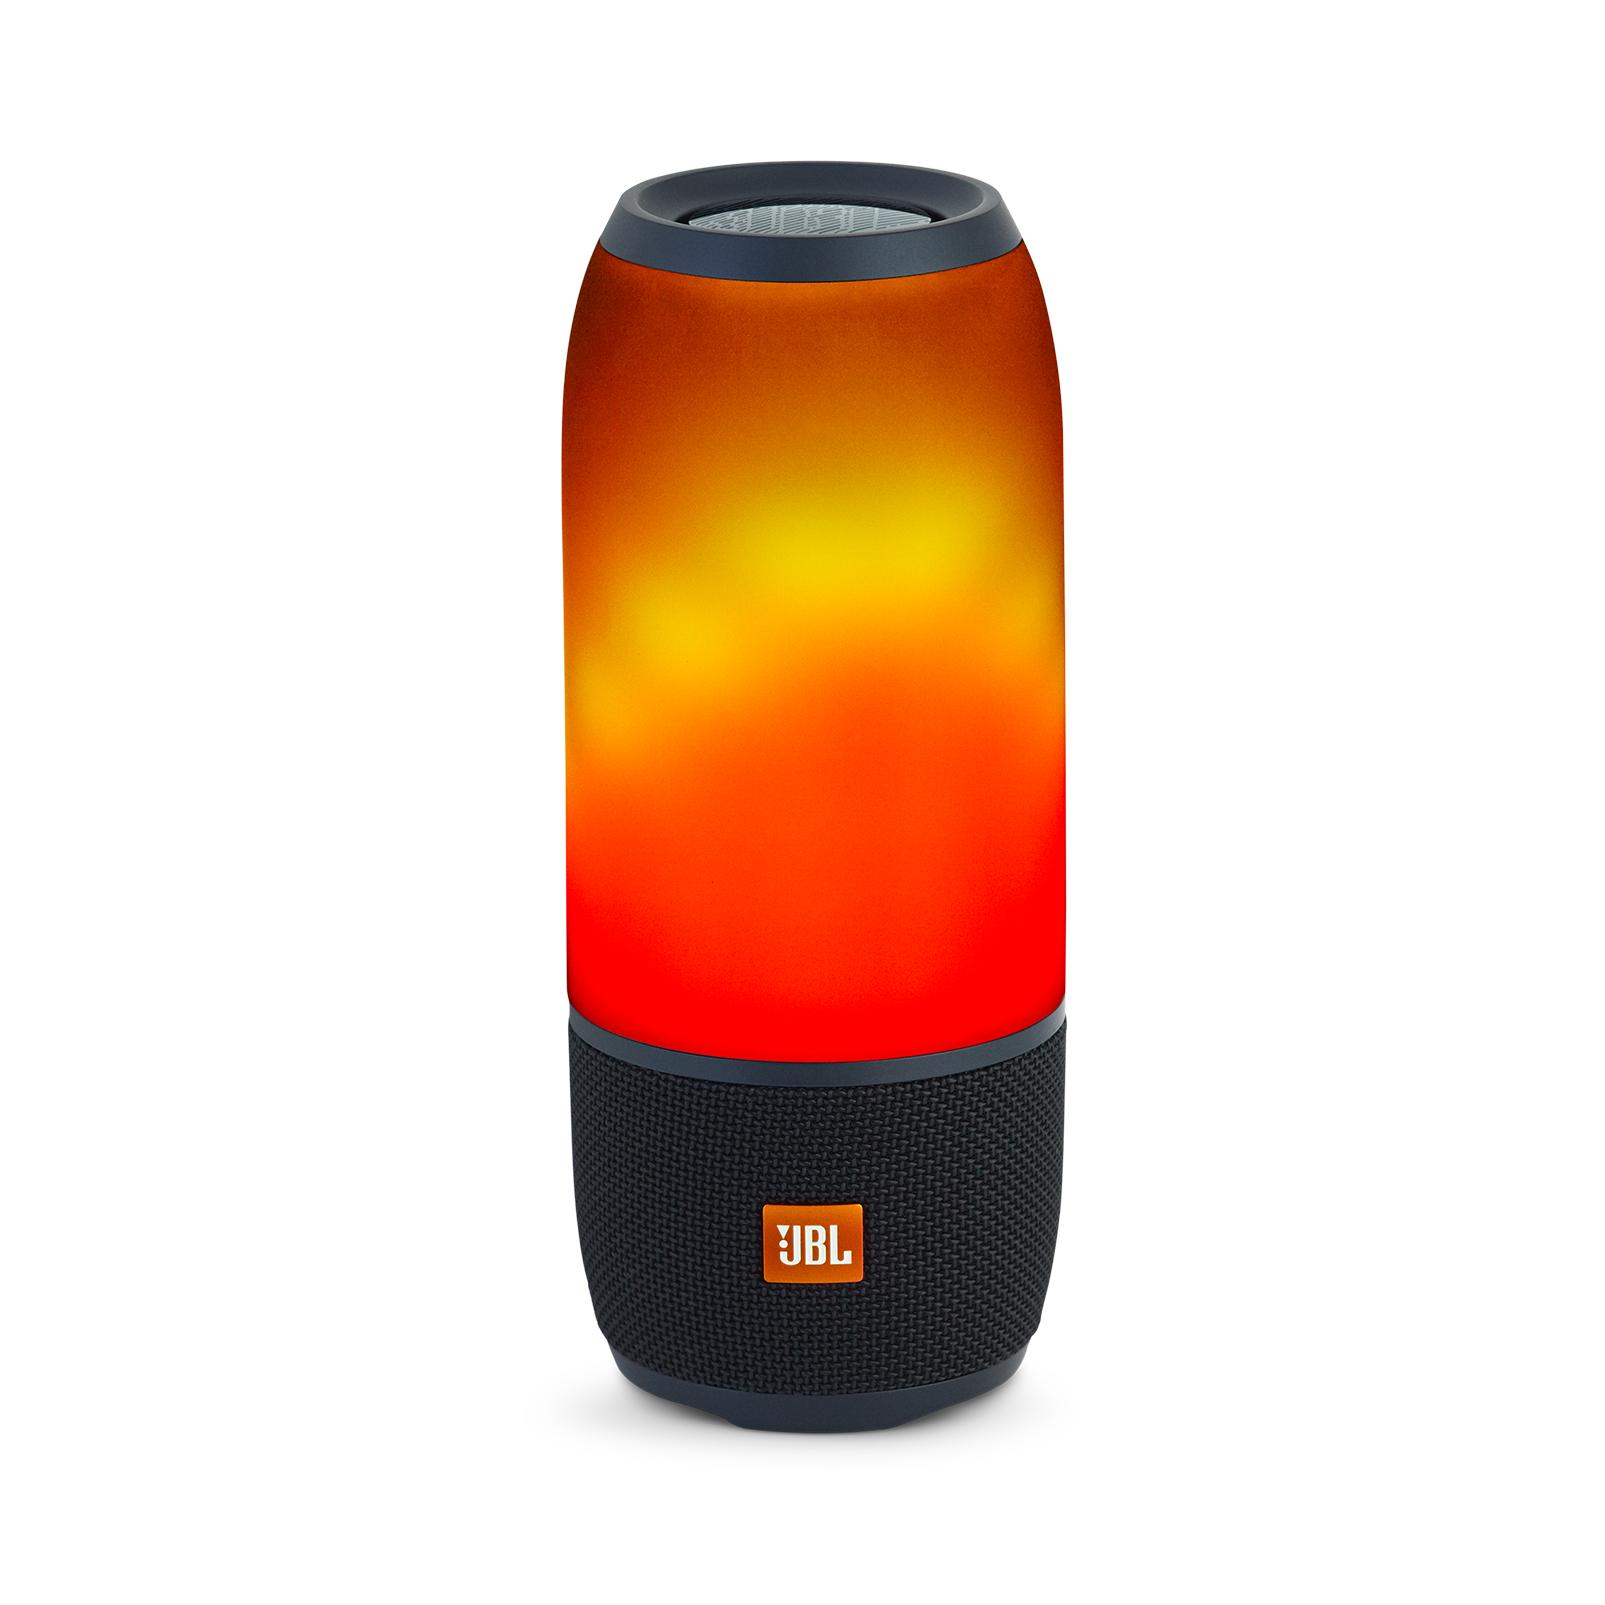 Jbl Pulse 3 Waterproof Bluetooth Speaker With 360 176 Lightshow